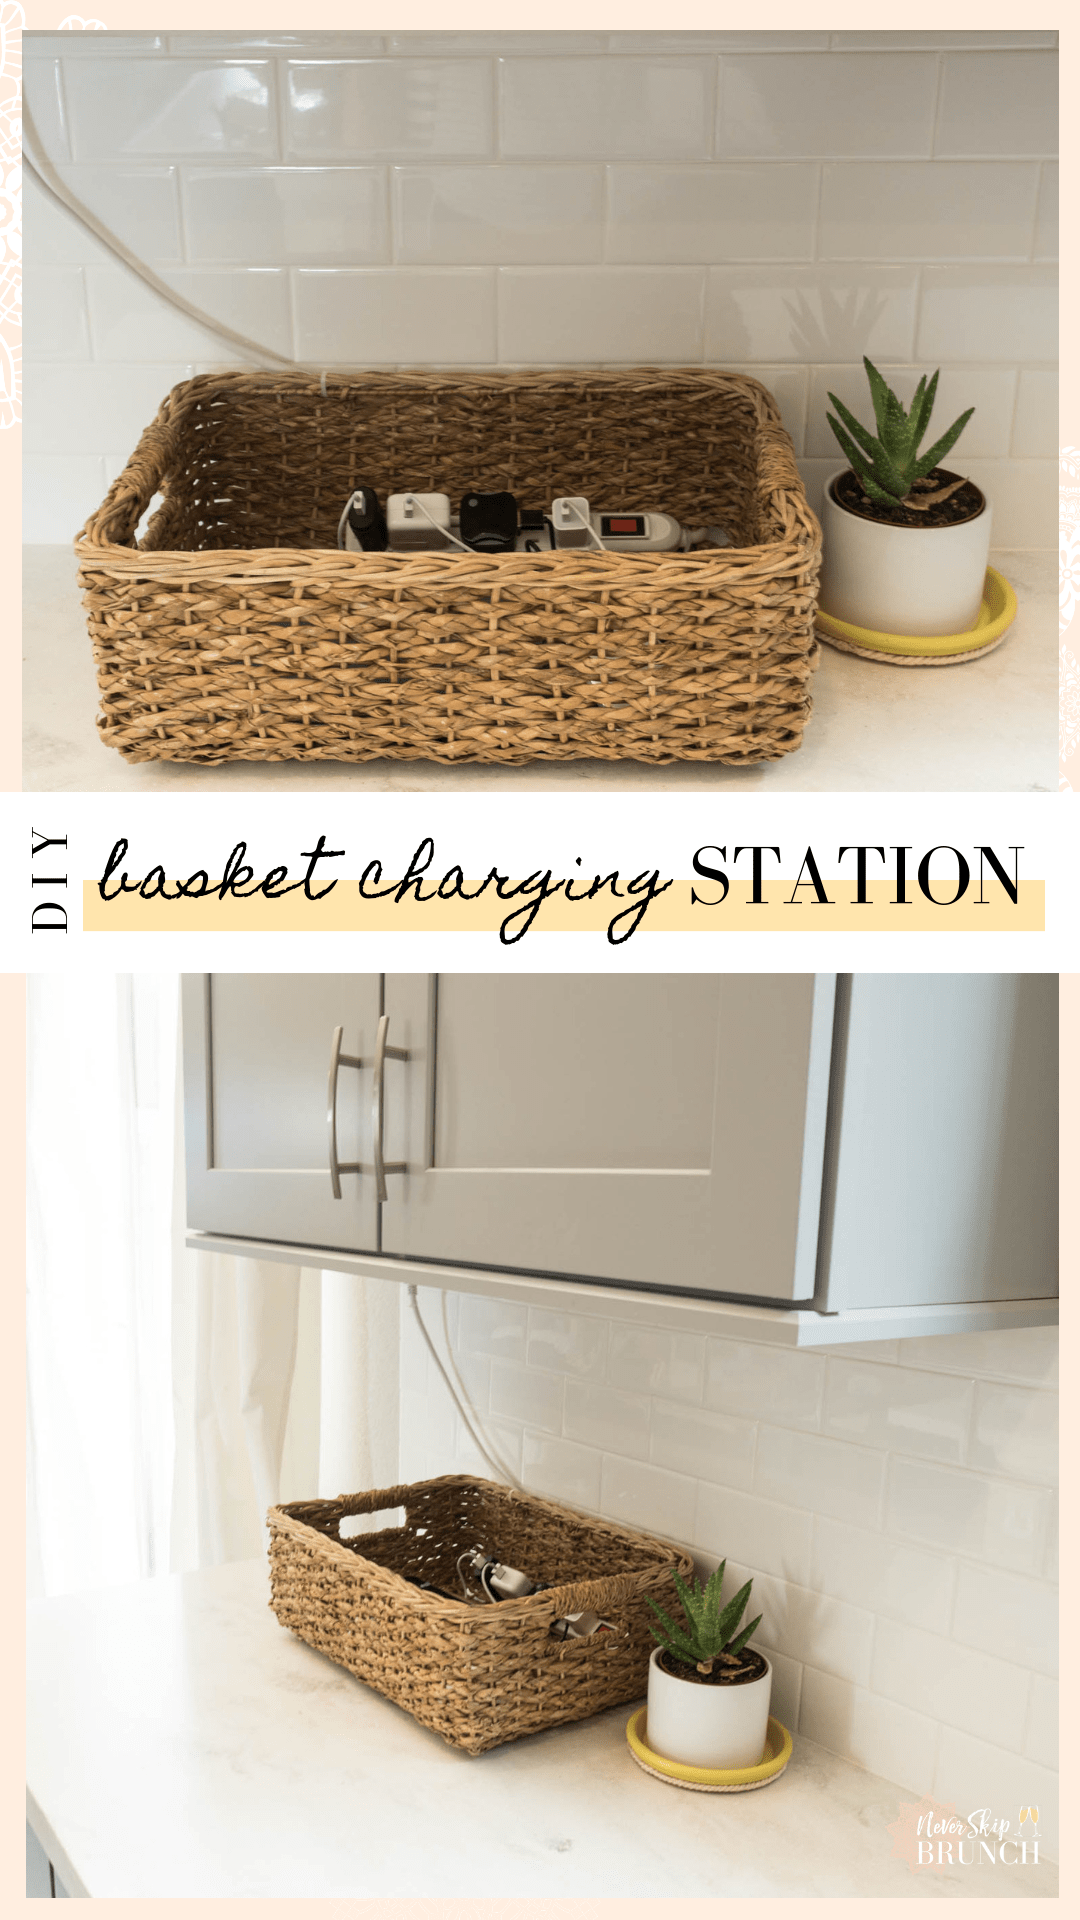 Organize Your Devices With An Easy Diy Basket Charging Station Never Skip Brunch Bedroom Organization Diy Kitchen Organization Diy Home Diy